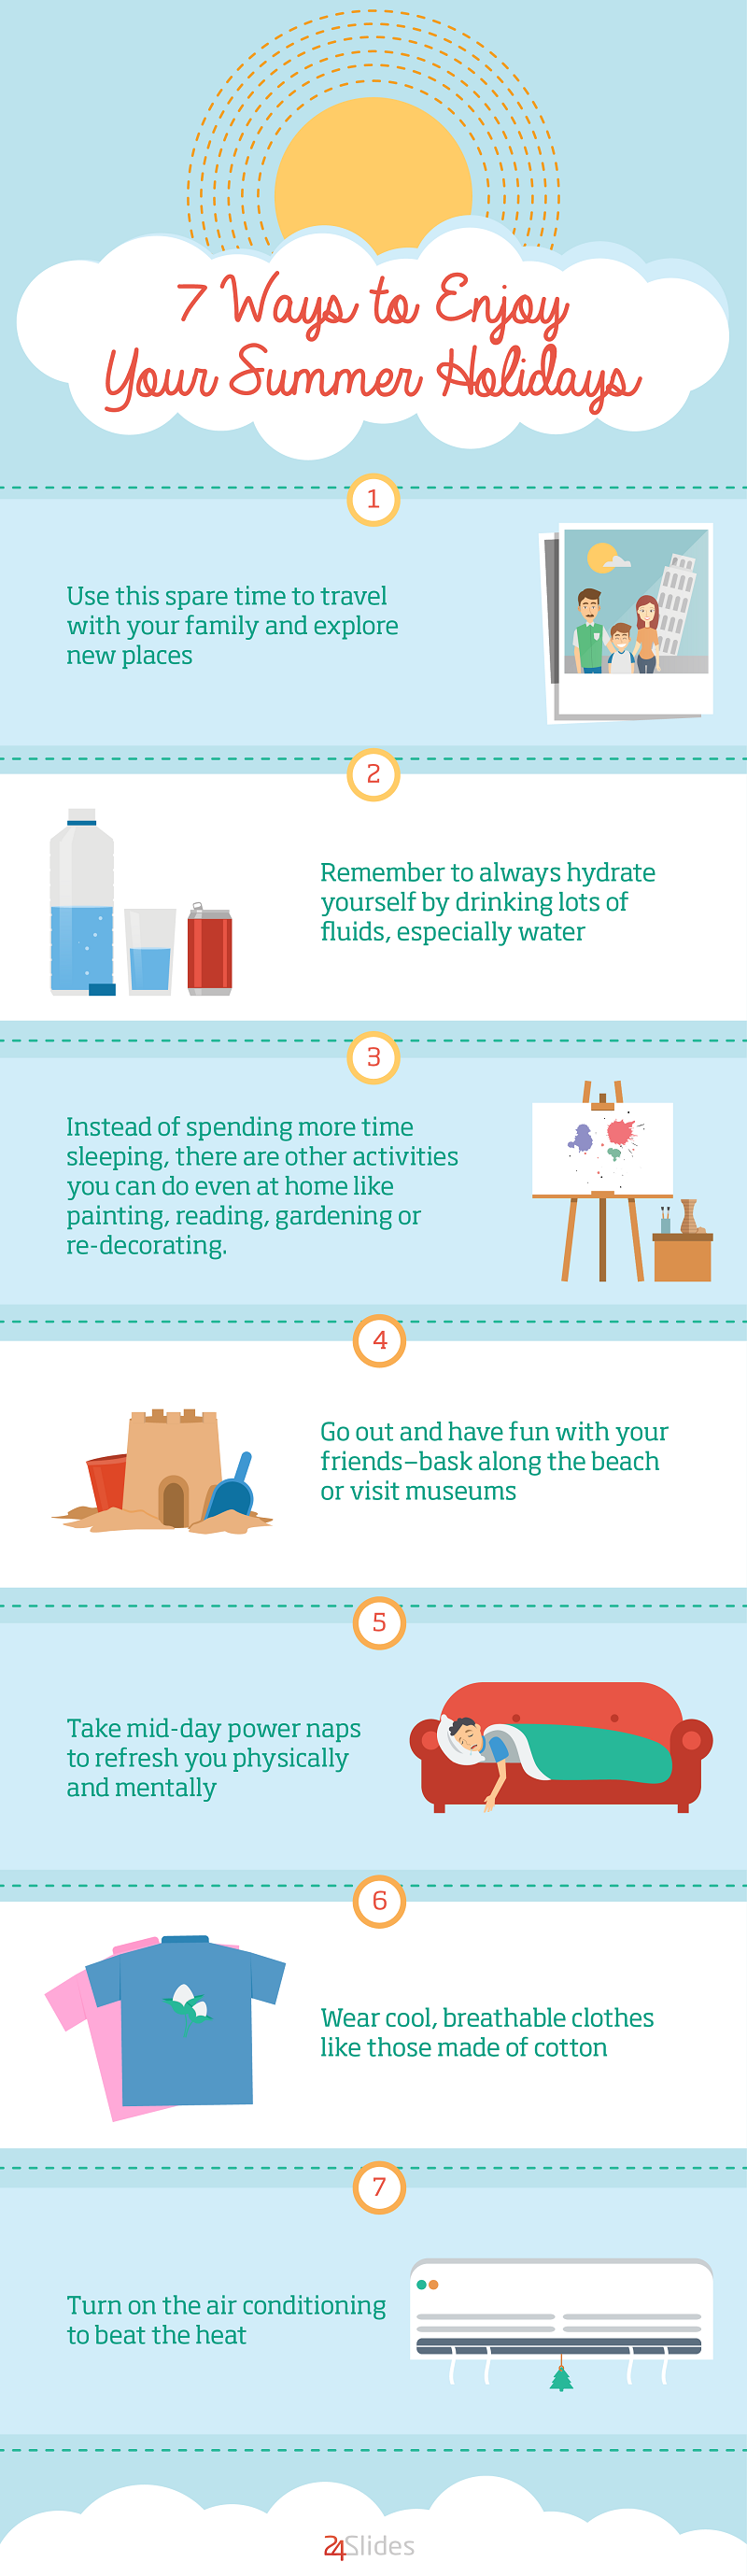 [INFOGRAPHIC] 7 Ways to Enjoy Your Summer Holidays - An Infographic from BLOG